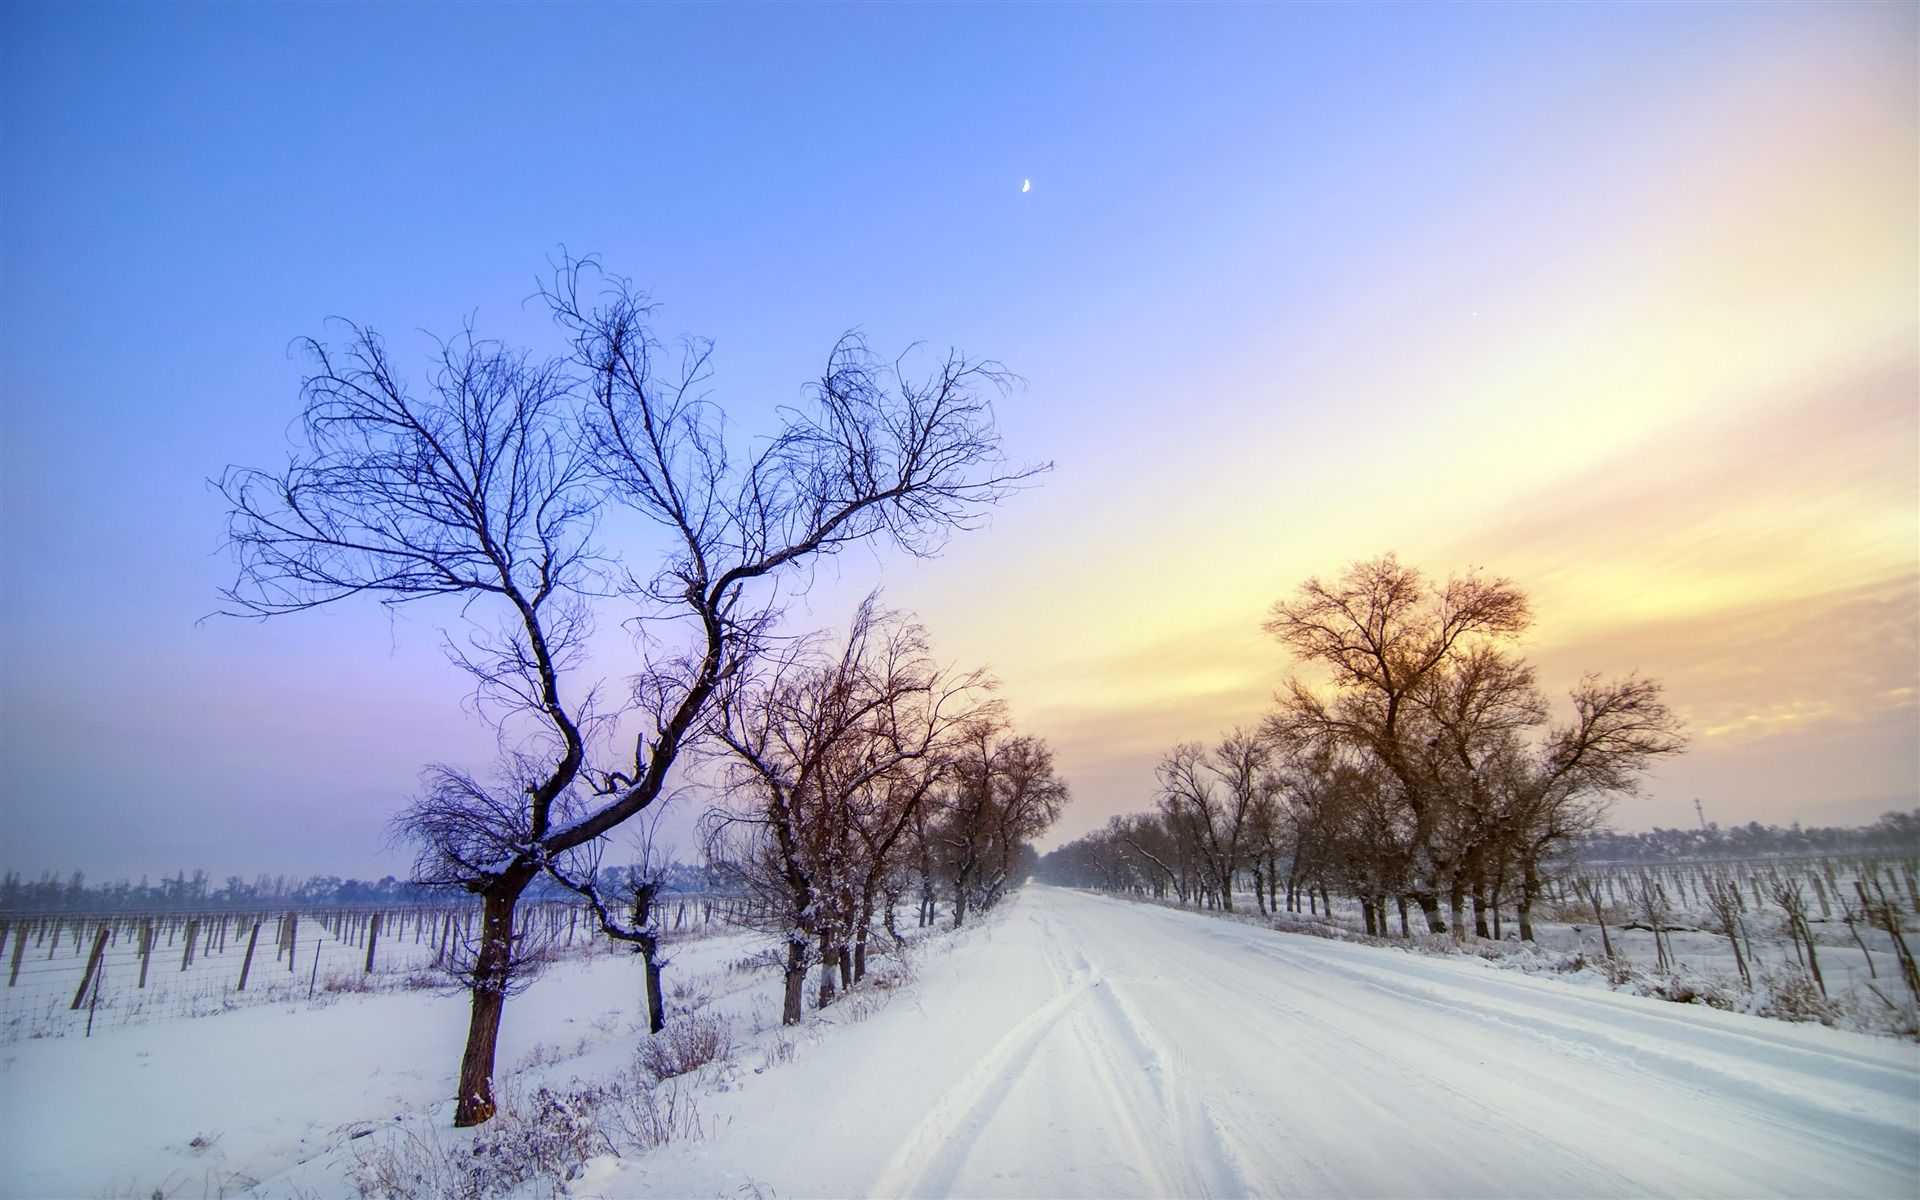 Snow Covered Road Scenery Wallpaper 1920x1200